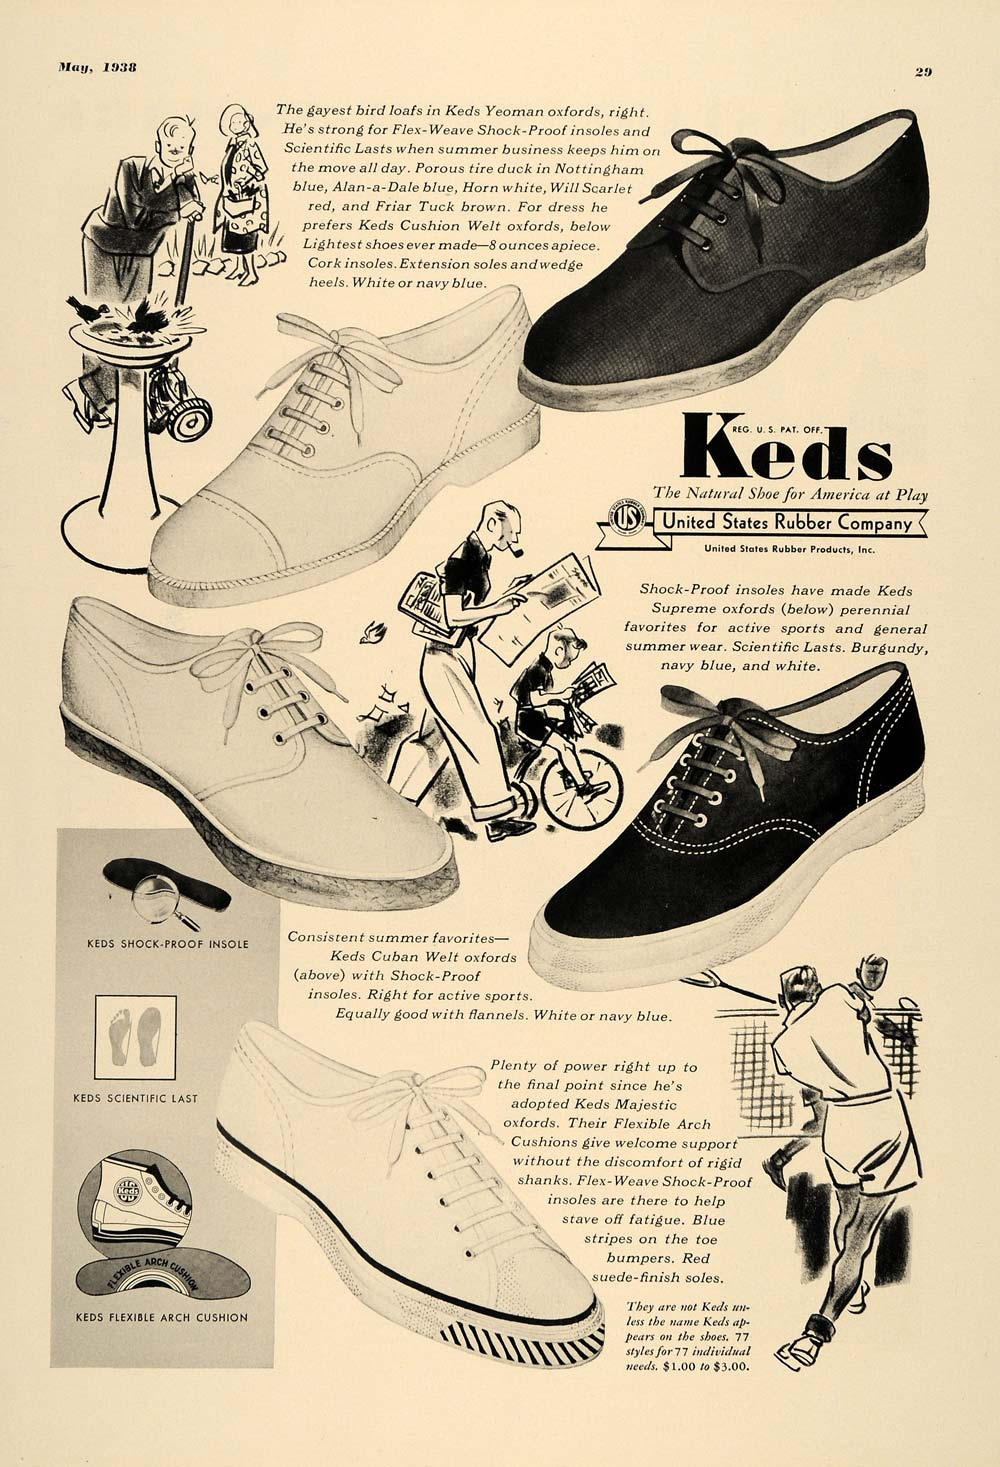 1938 Ad Keds Shoes Pricing United States Rubber Tennis - ORIGINAL ADVERTISING